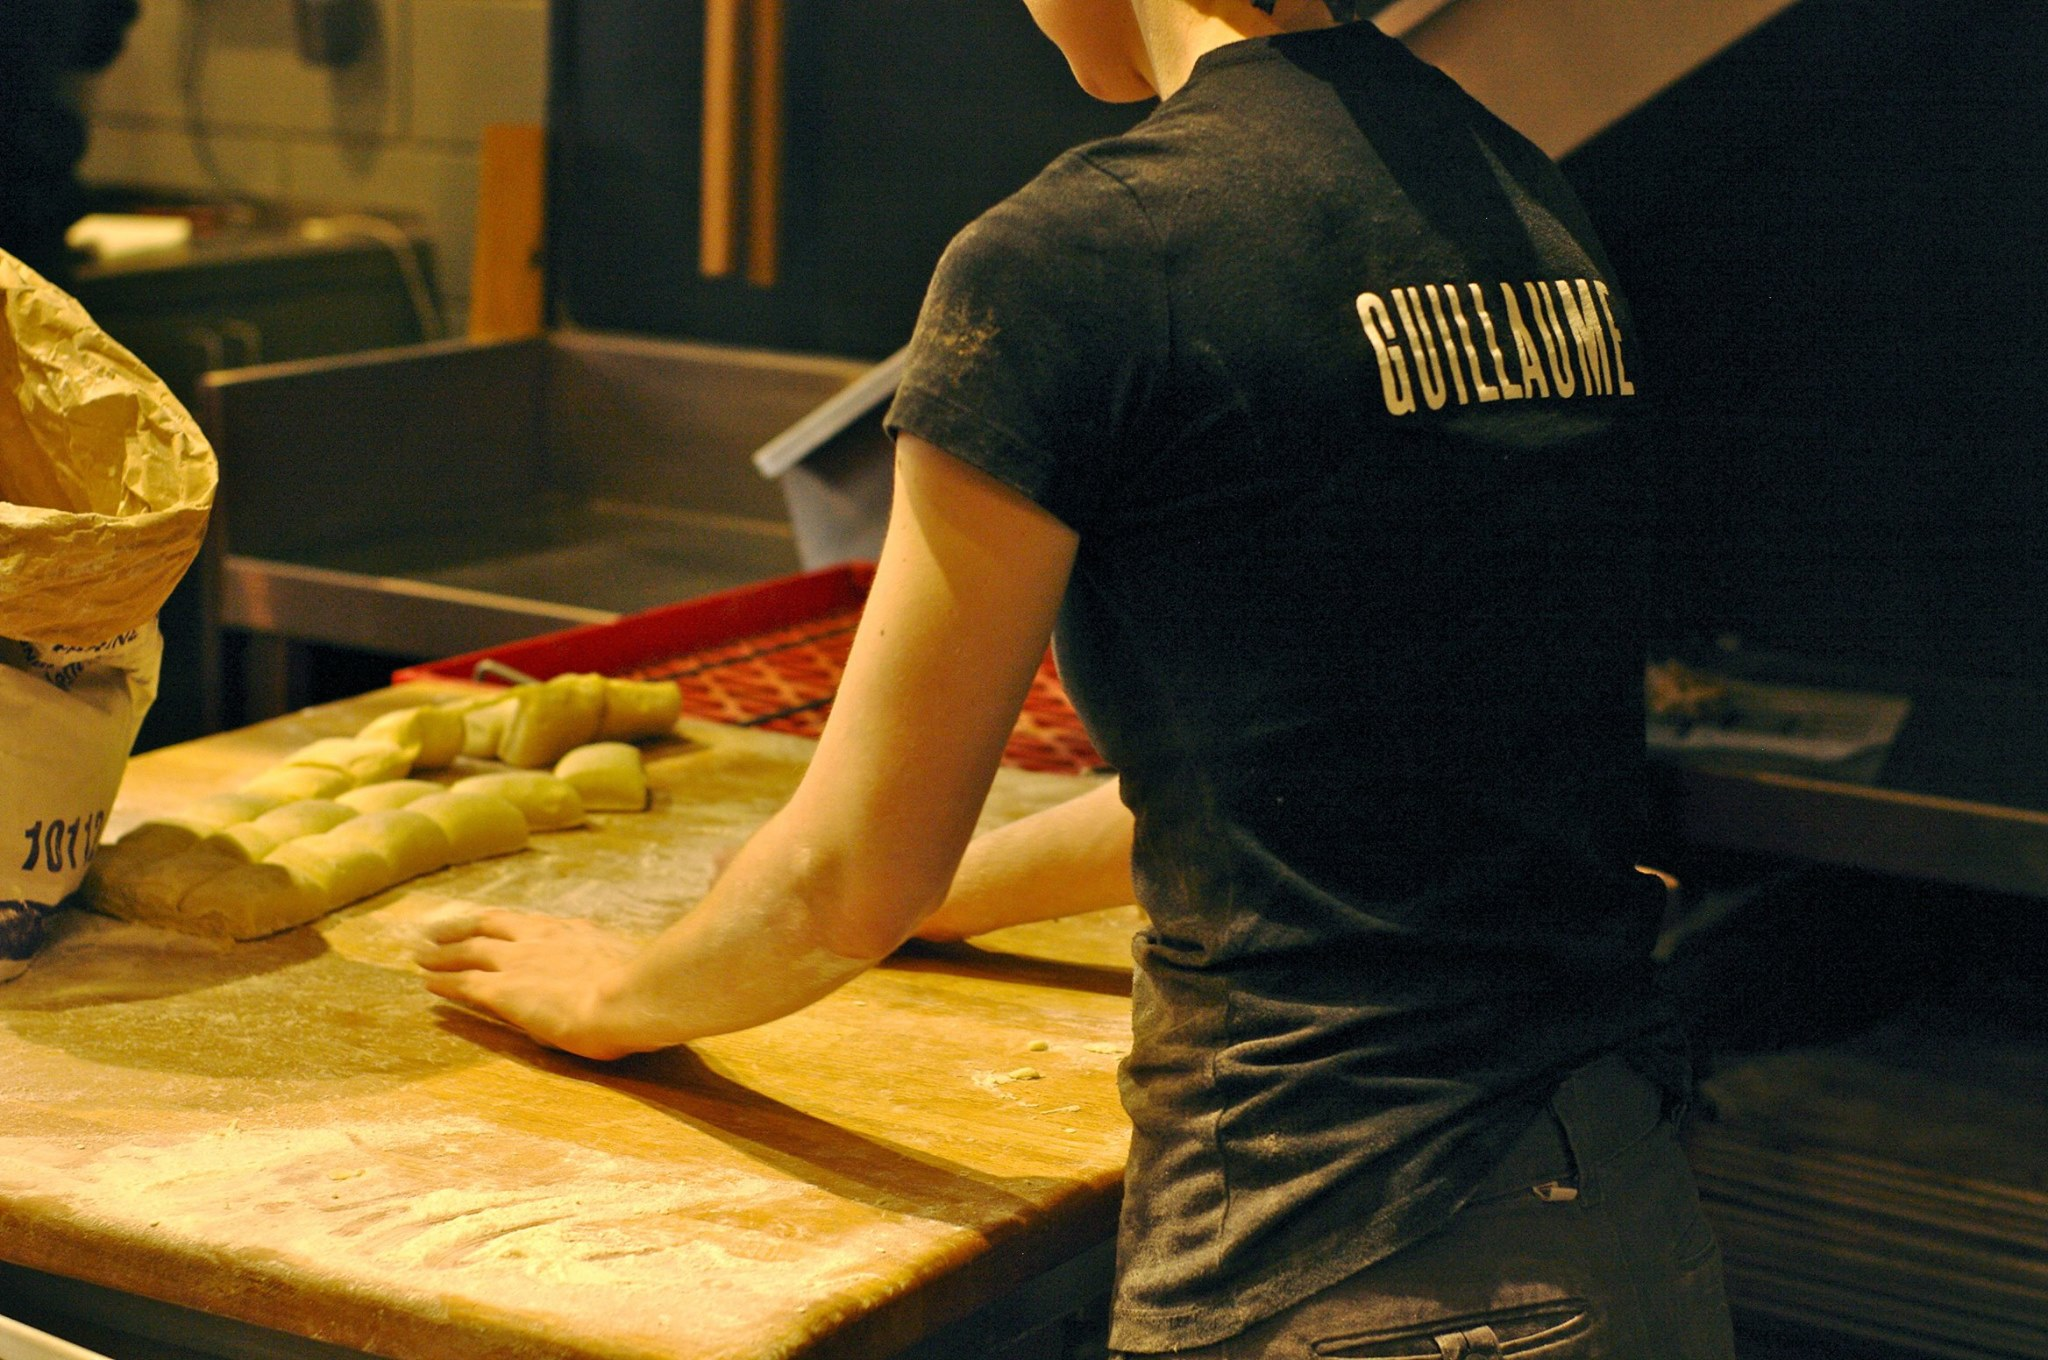 Huge news from Guillaume bakery this week